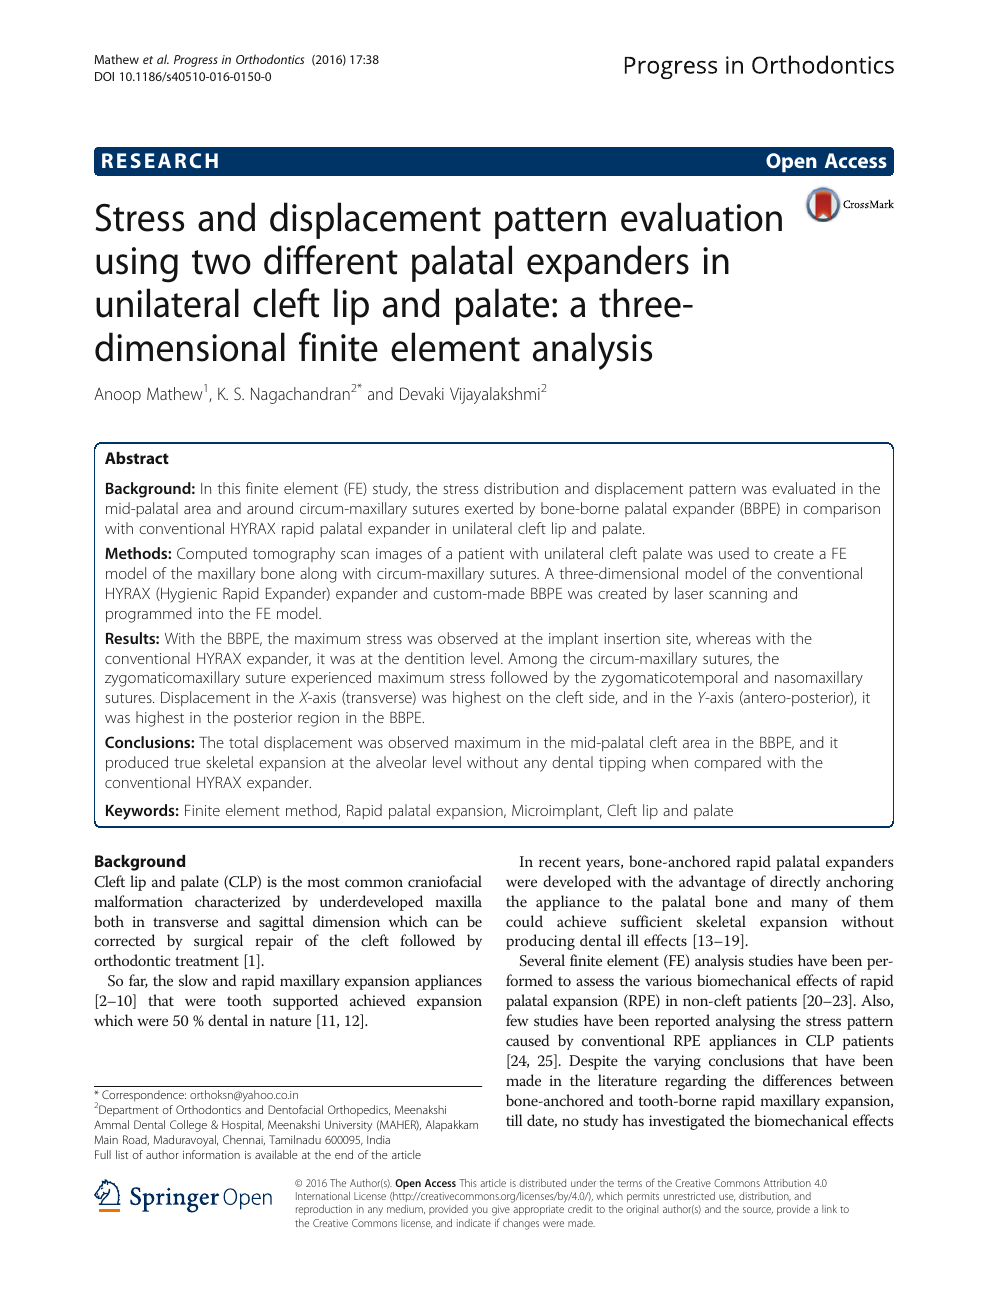 Stress and displacement pattern evaluation using two